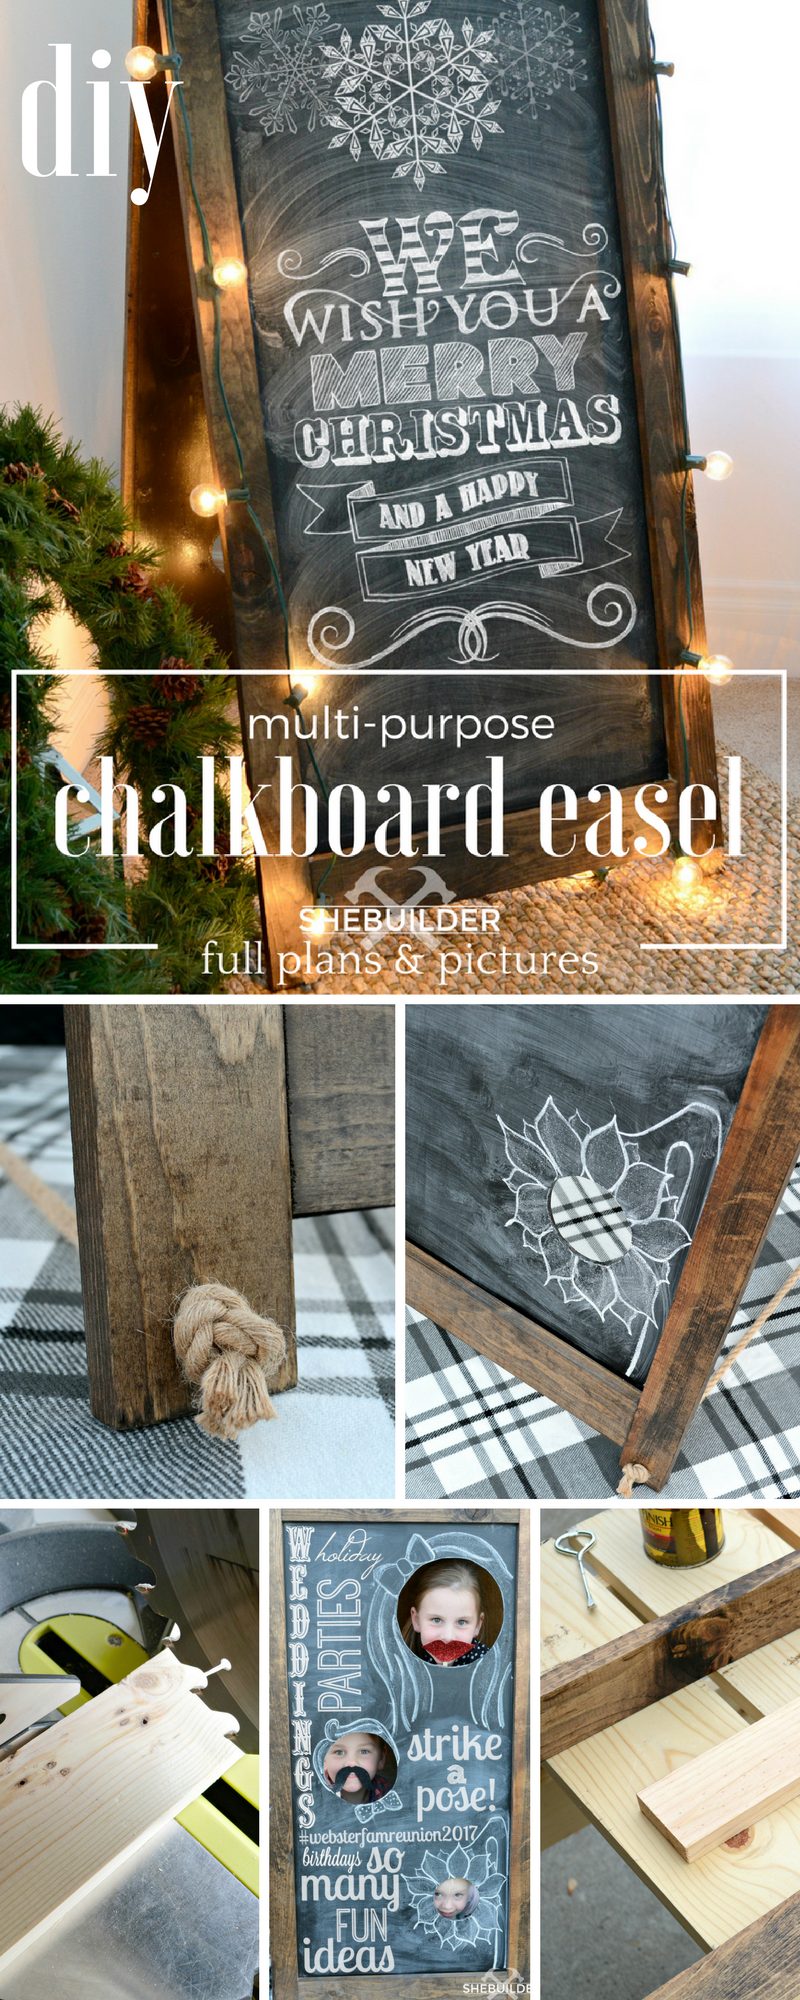 DIY Multi-Purpose Chalkboard Easel